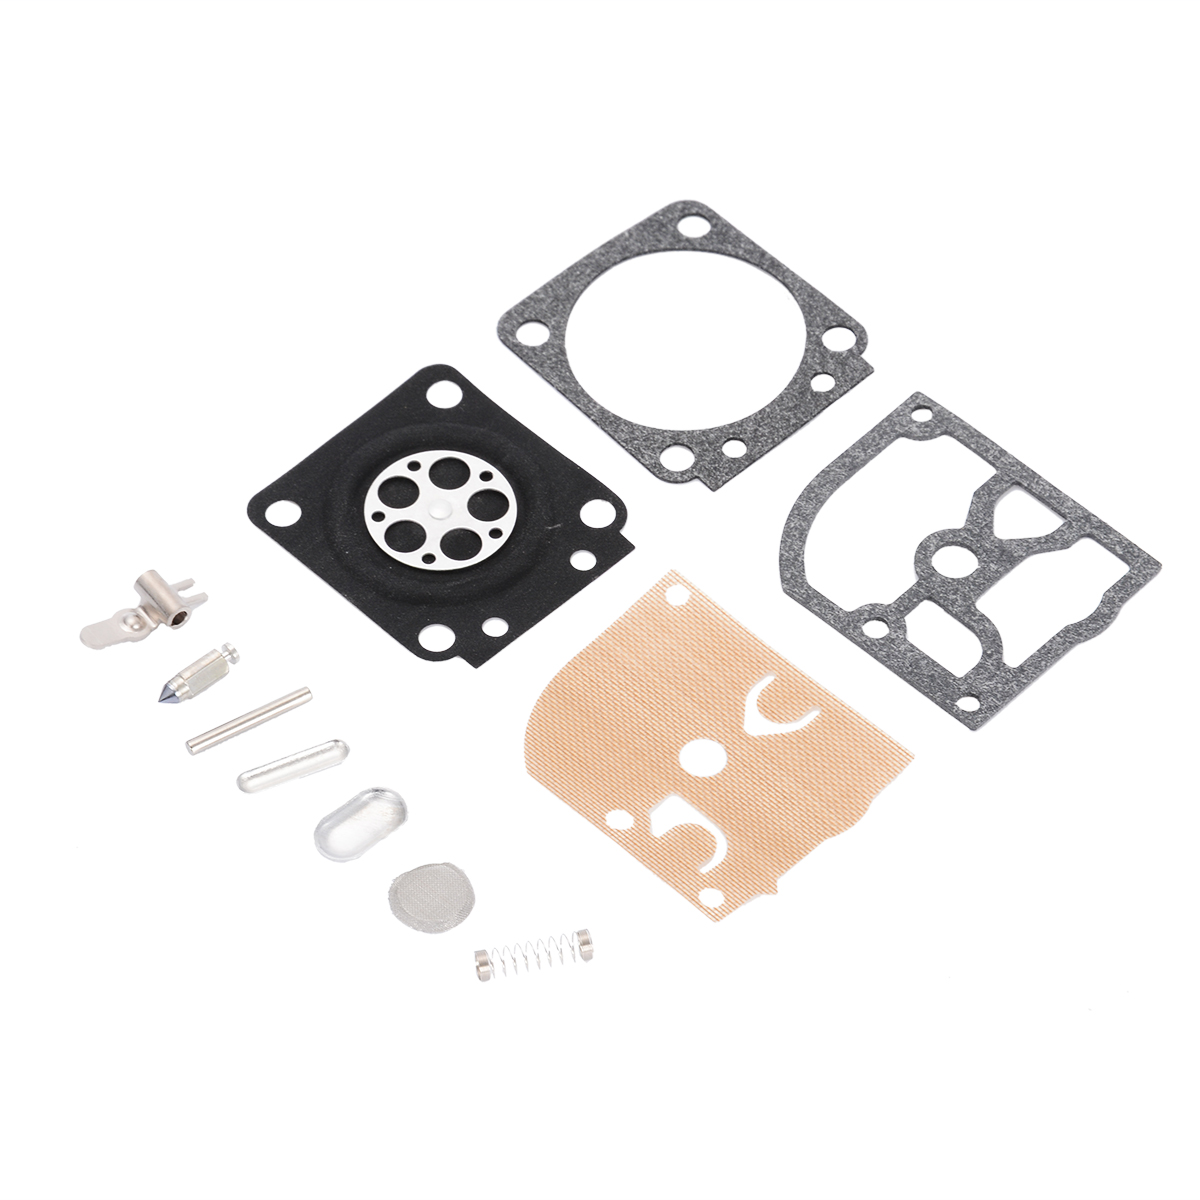 Buy Carburetor Carb Repair Rebuild Kit Gasket For RB77 STIHL 018 017 MS180 170 Repair Kits Gasket Mayitr for only 2.01 USD